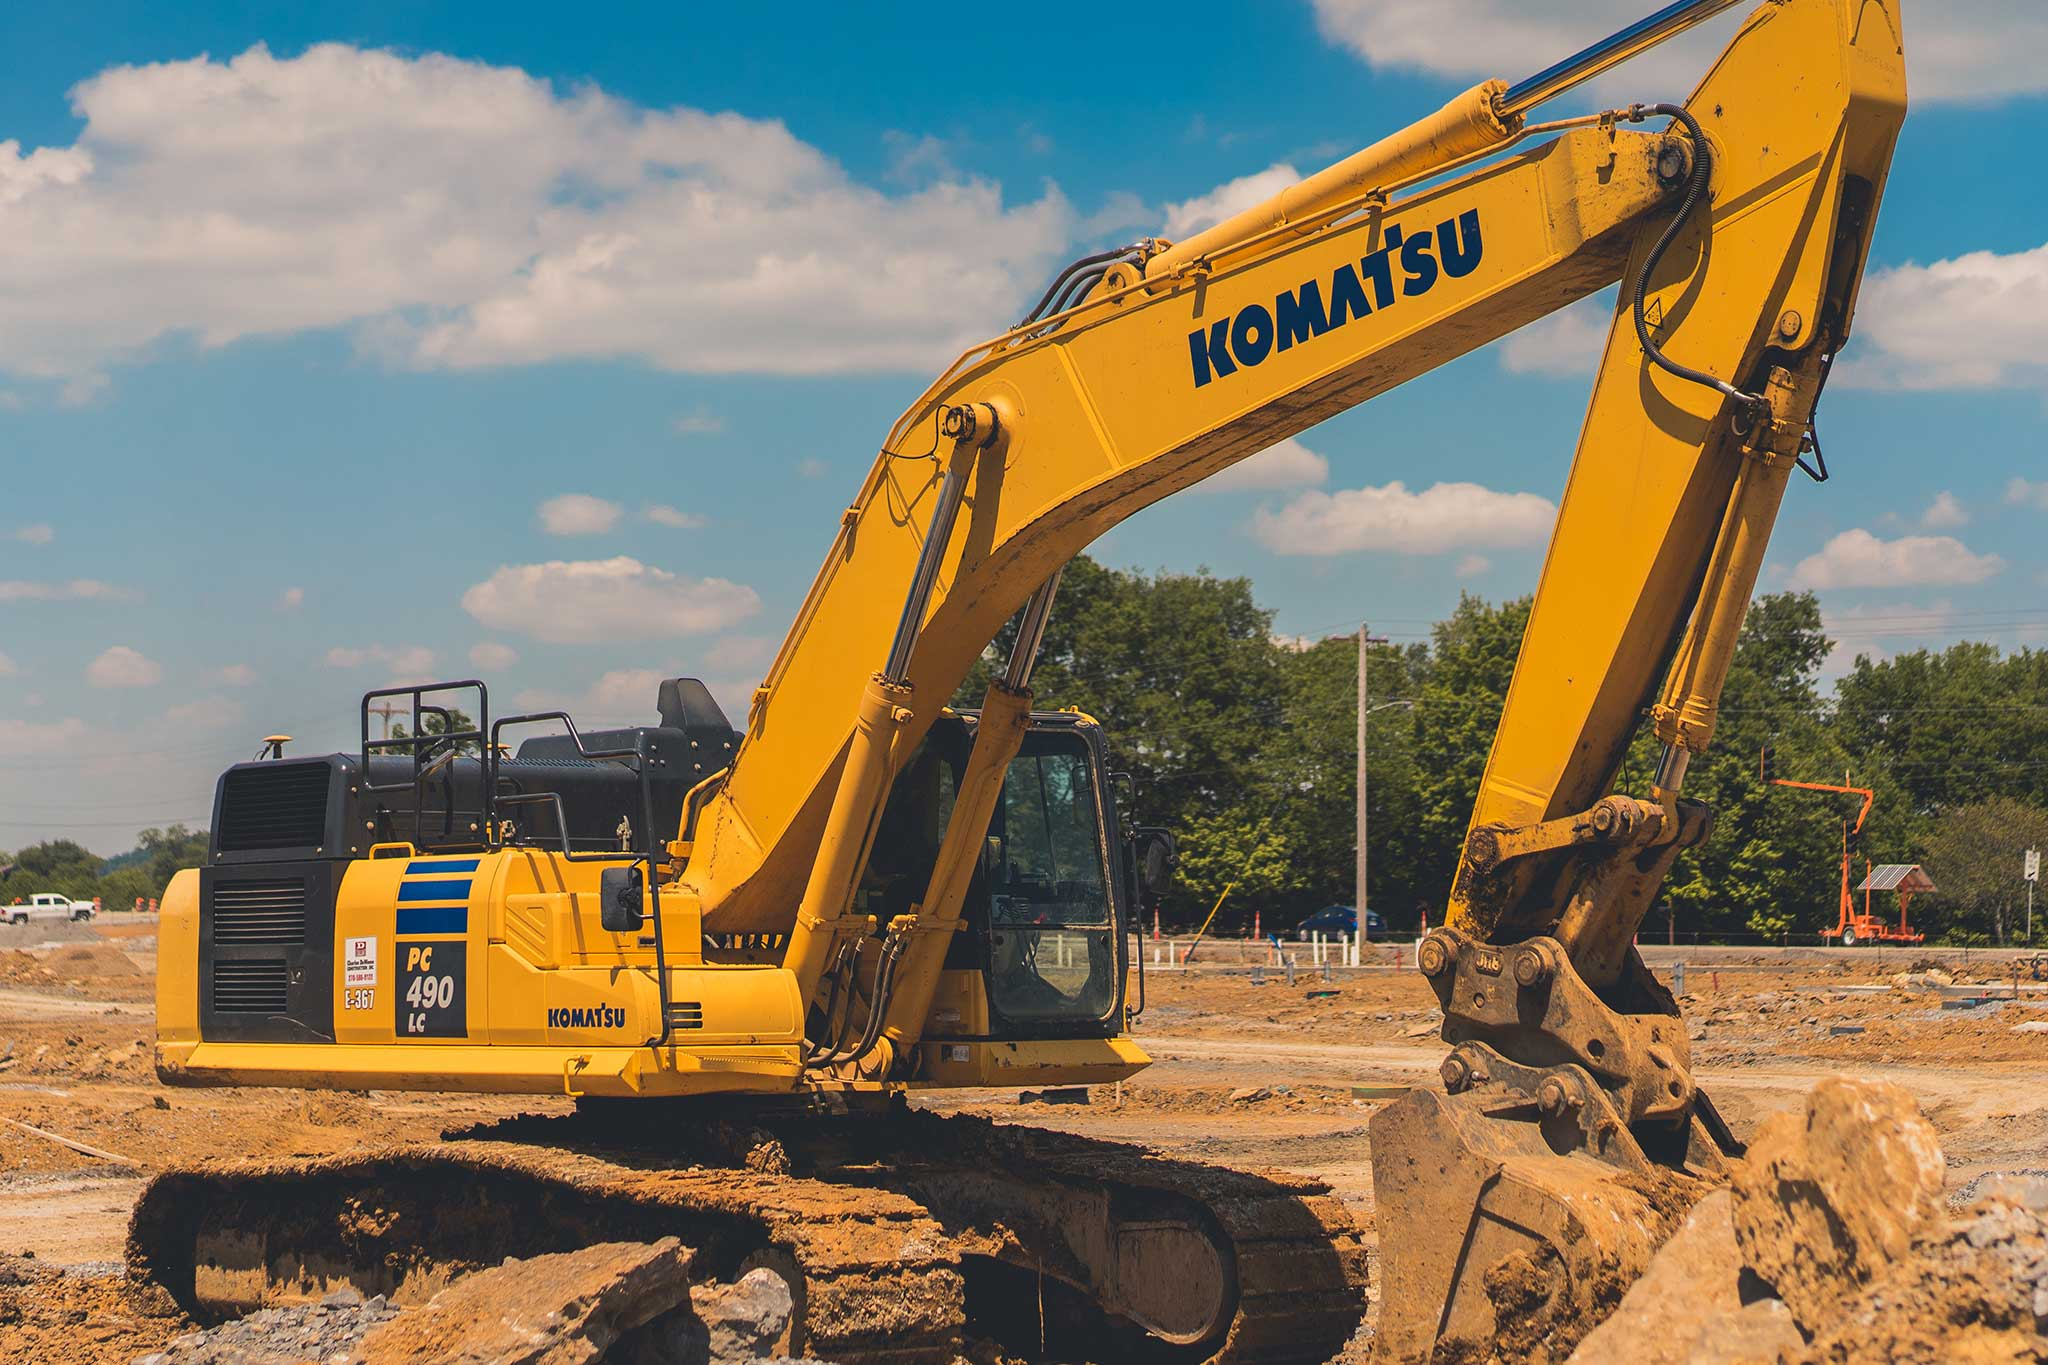 CDCI Excavator performing Site Development Construction Services